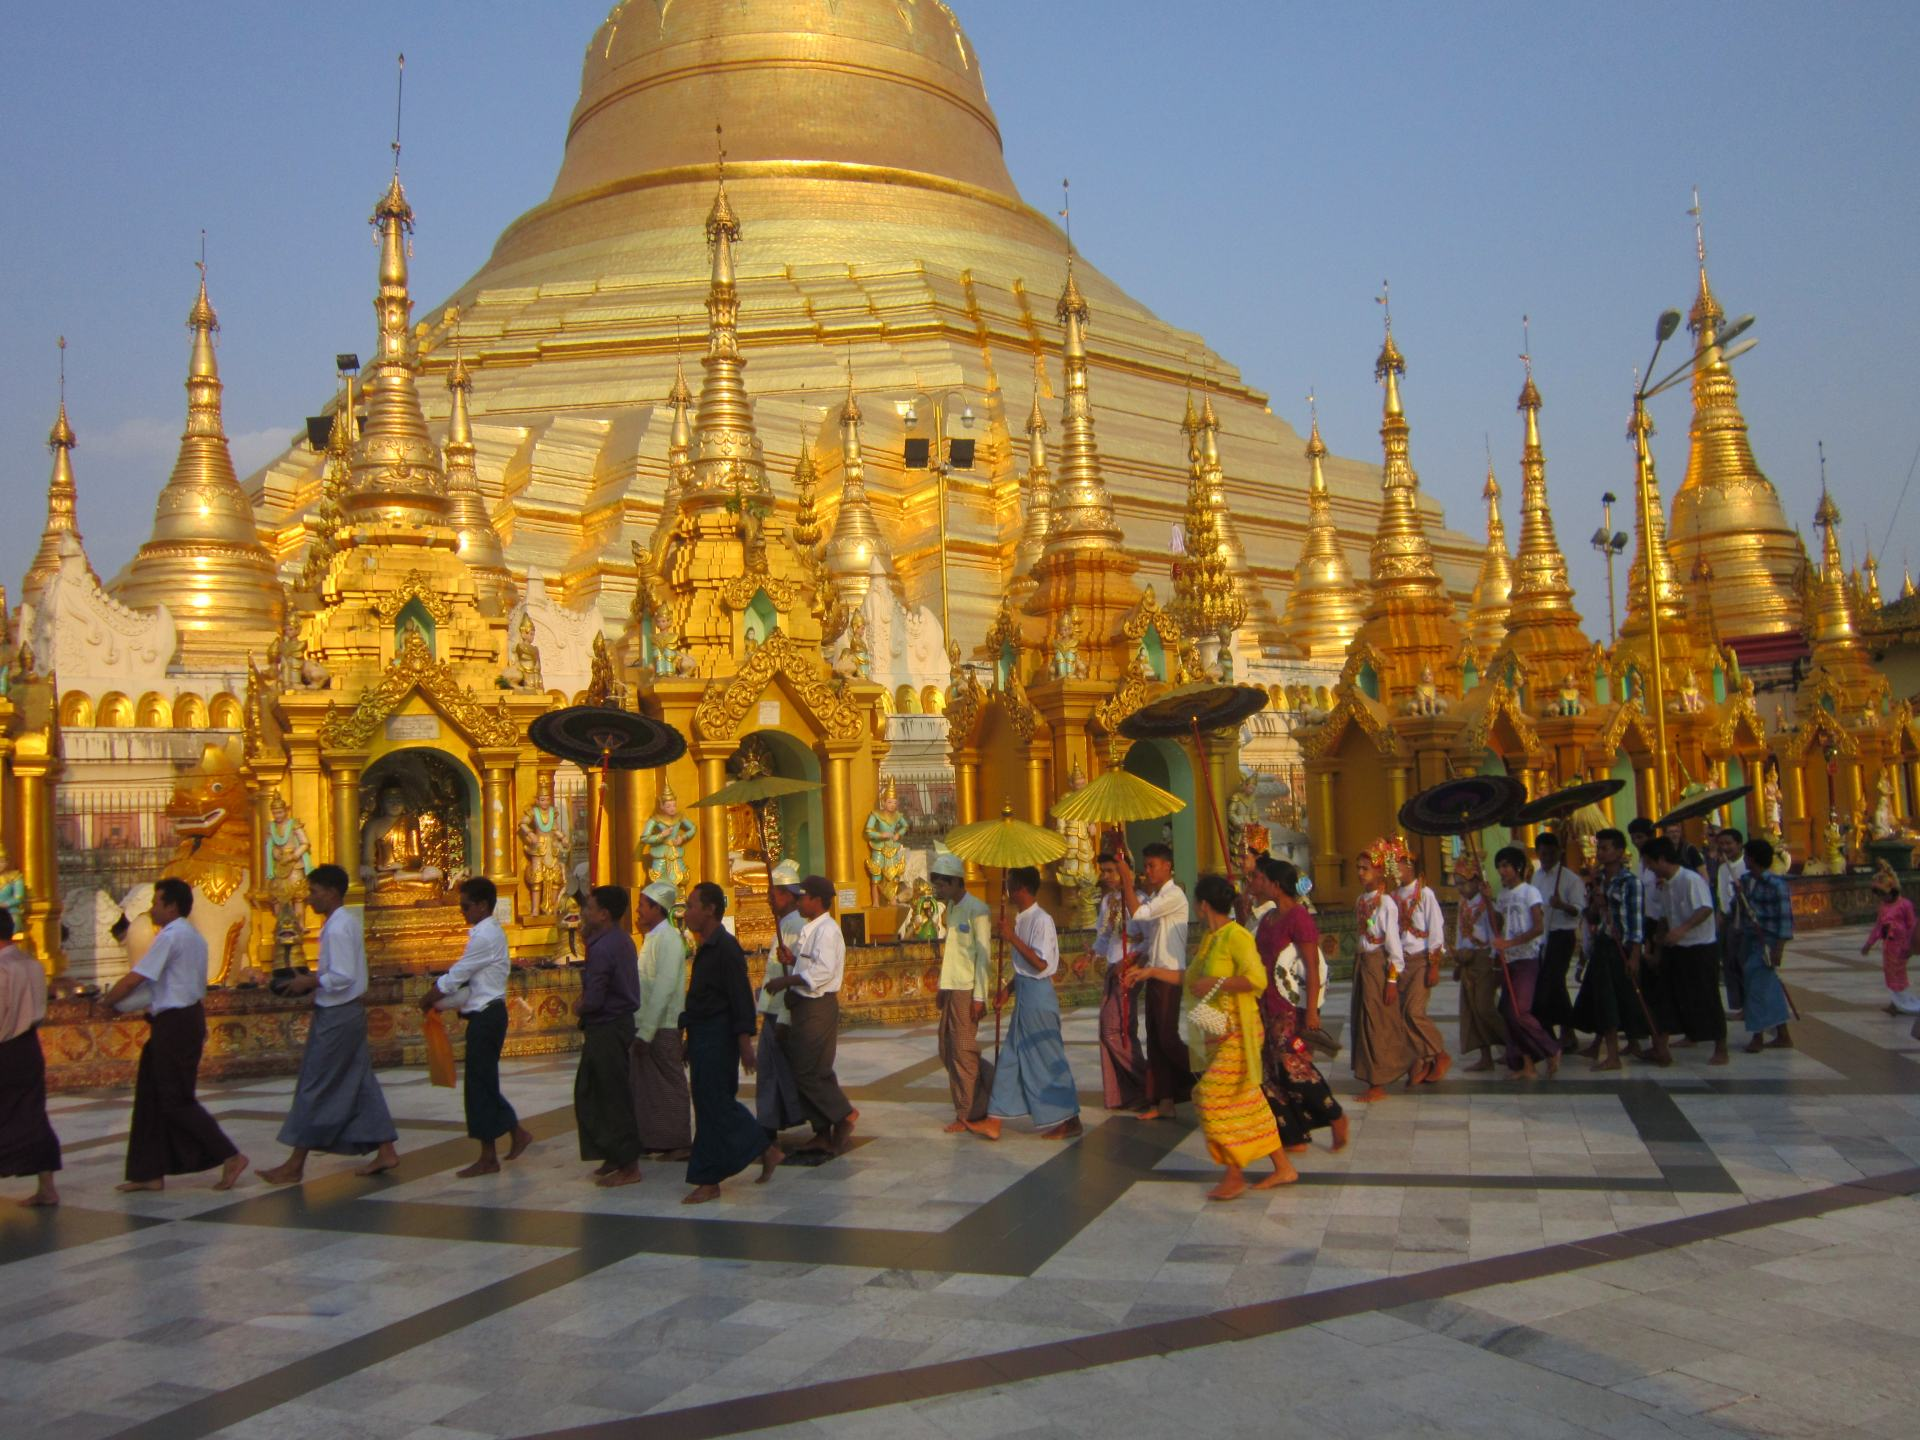 A crowd of people walking in front of the Golden Shwedagon Pagoda. One of the largest Southeast Asian temples.